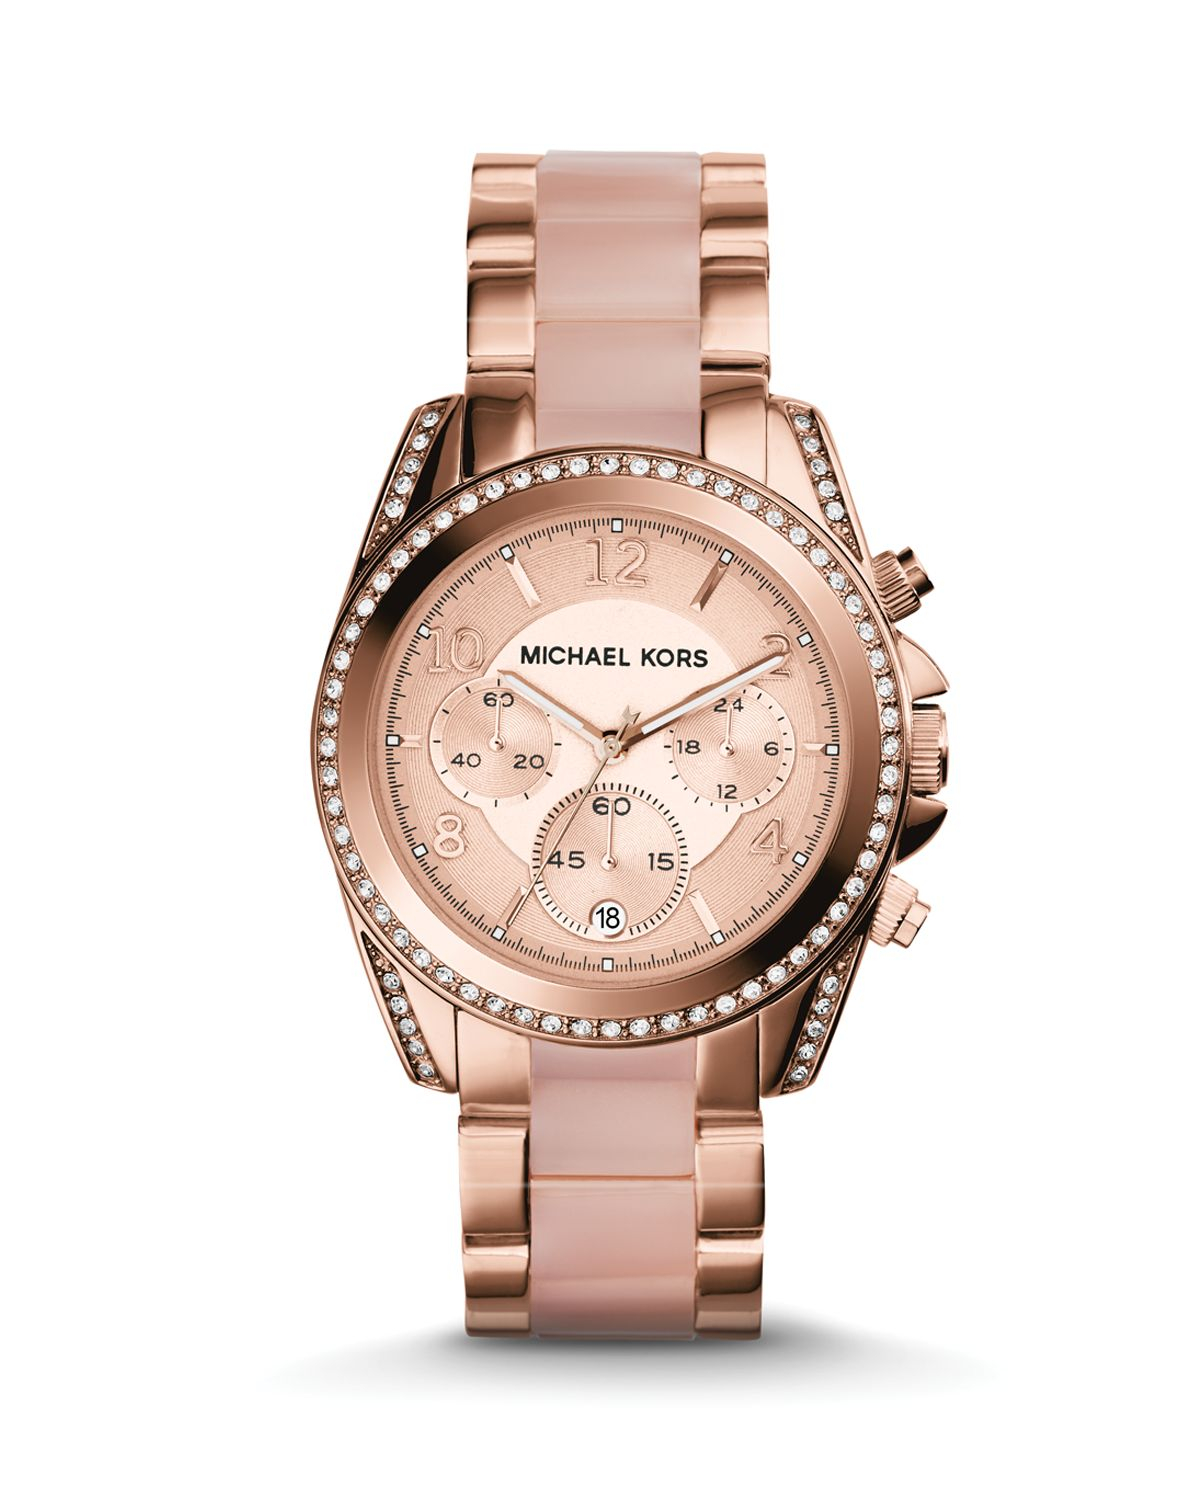 michael kors rose gold tone blair watch 39mm in pink rose gold lyst. Black Bedroom Furniture Sets. Home Design Ideas